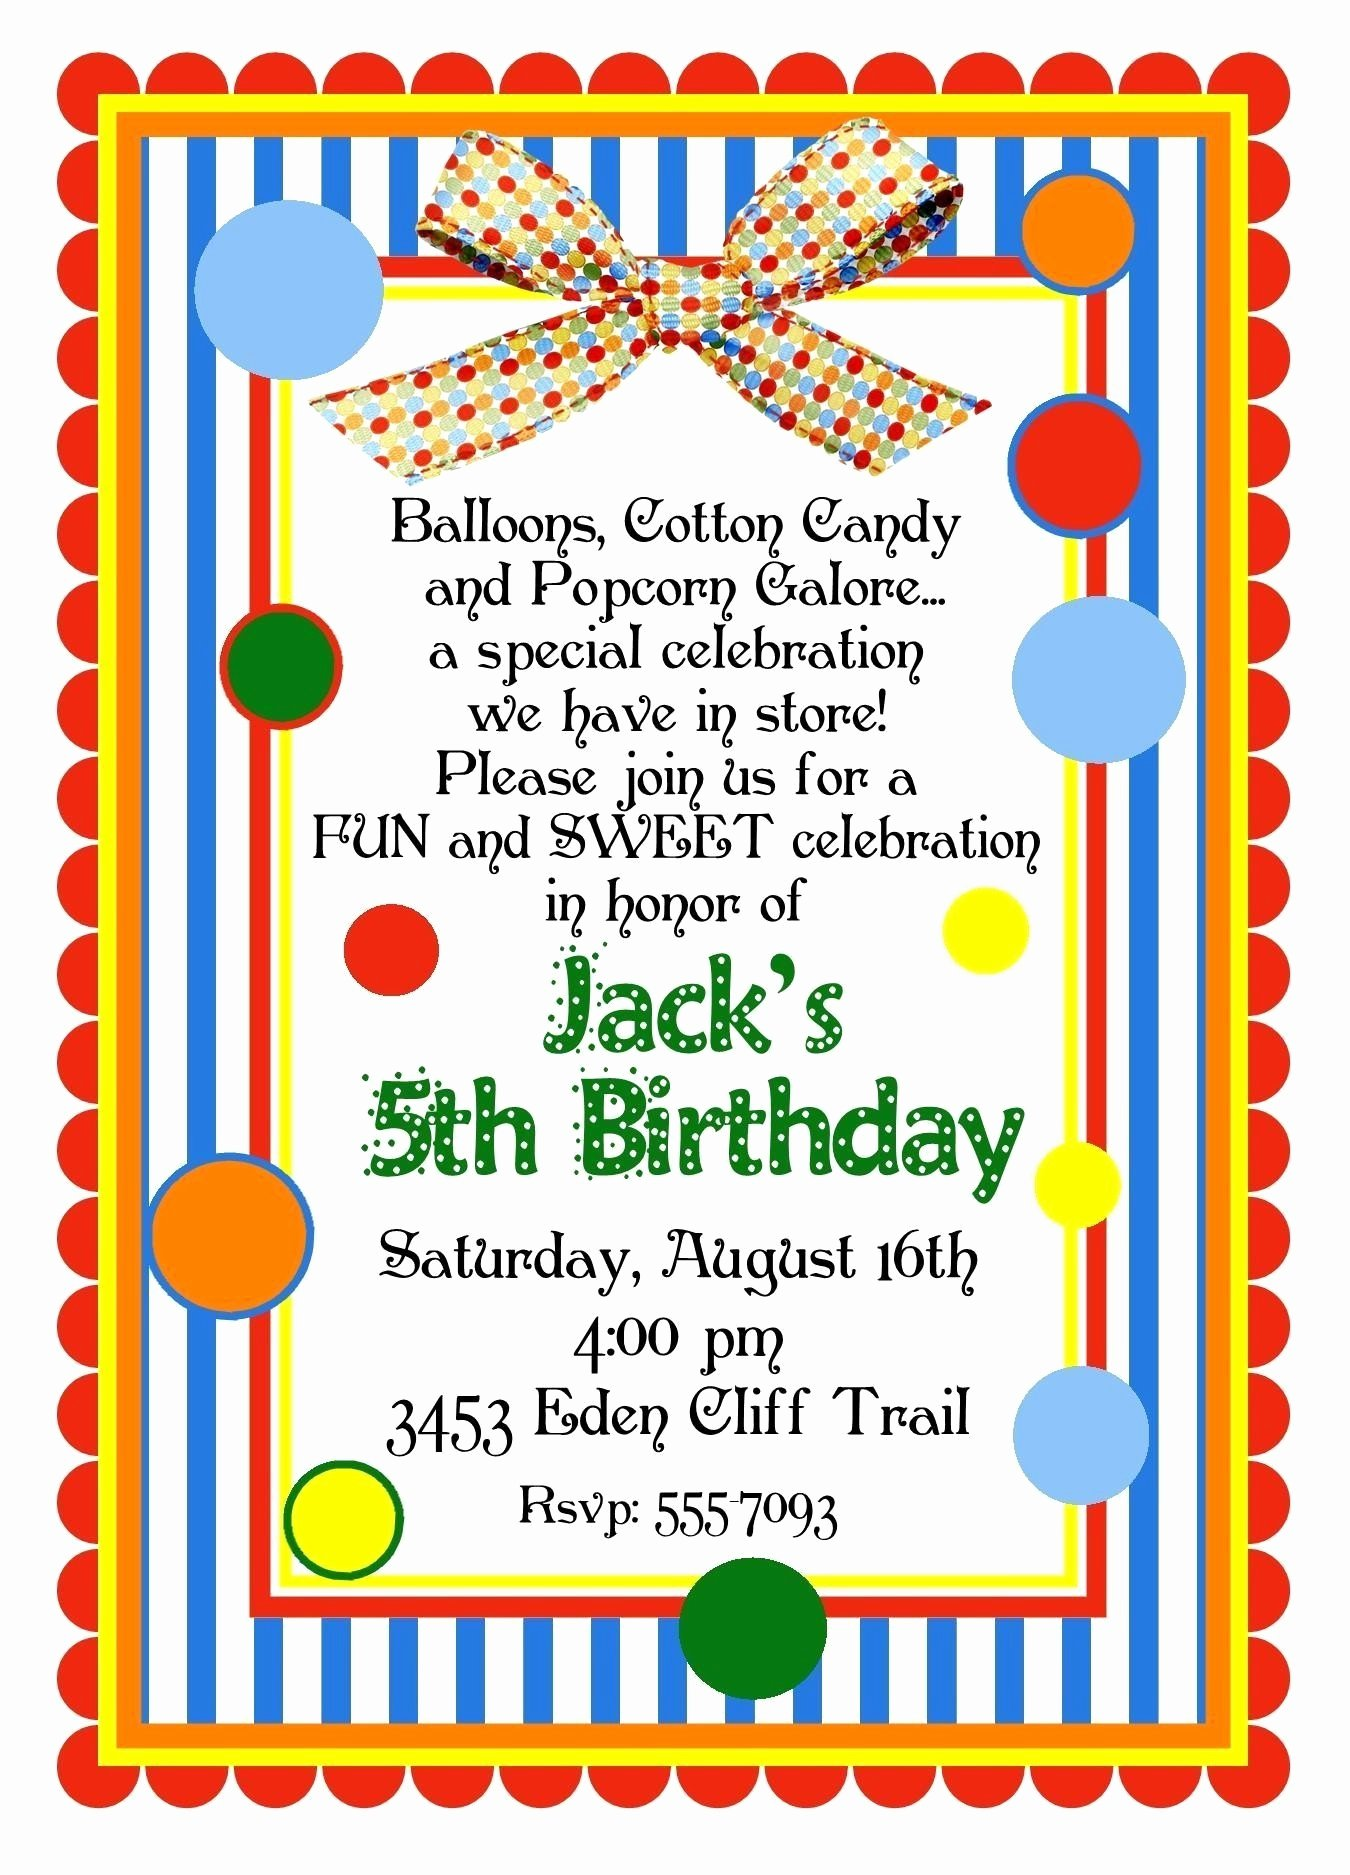 Carnival Birthday Party Invitations Awesome Personalized Invitations Circus Carnival Birthday Party